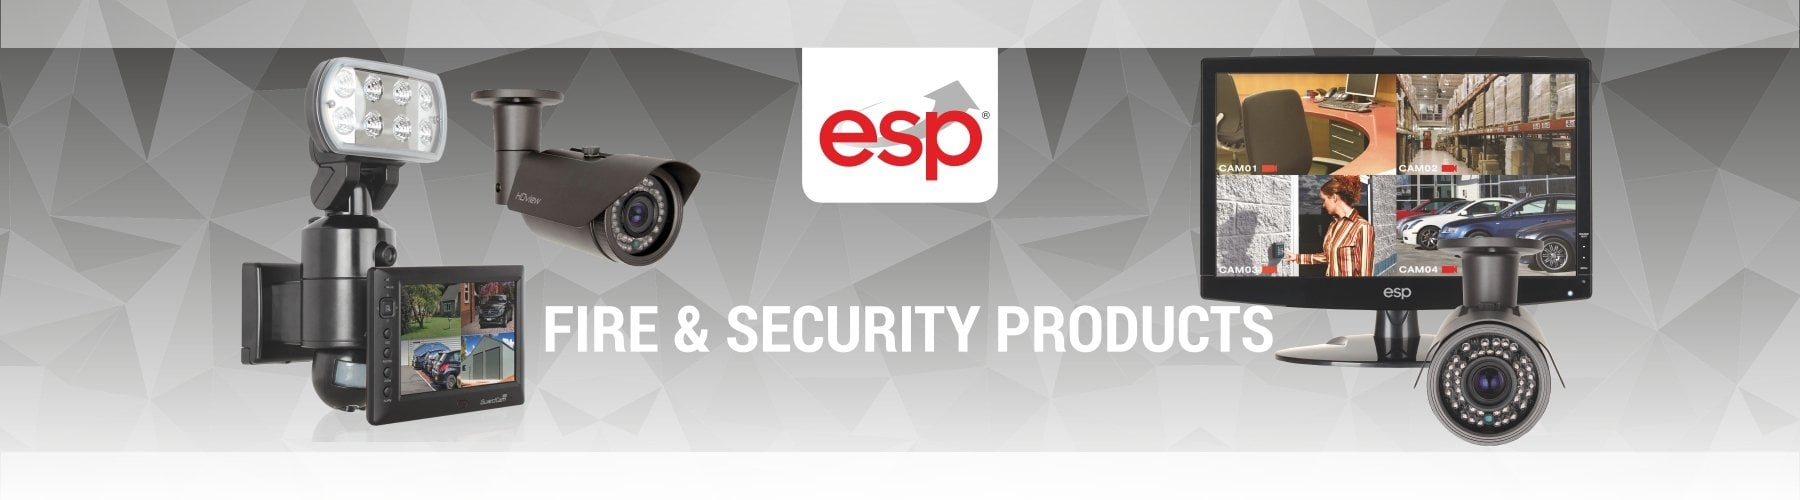 ESP fire & security